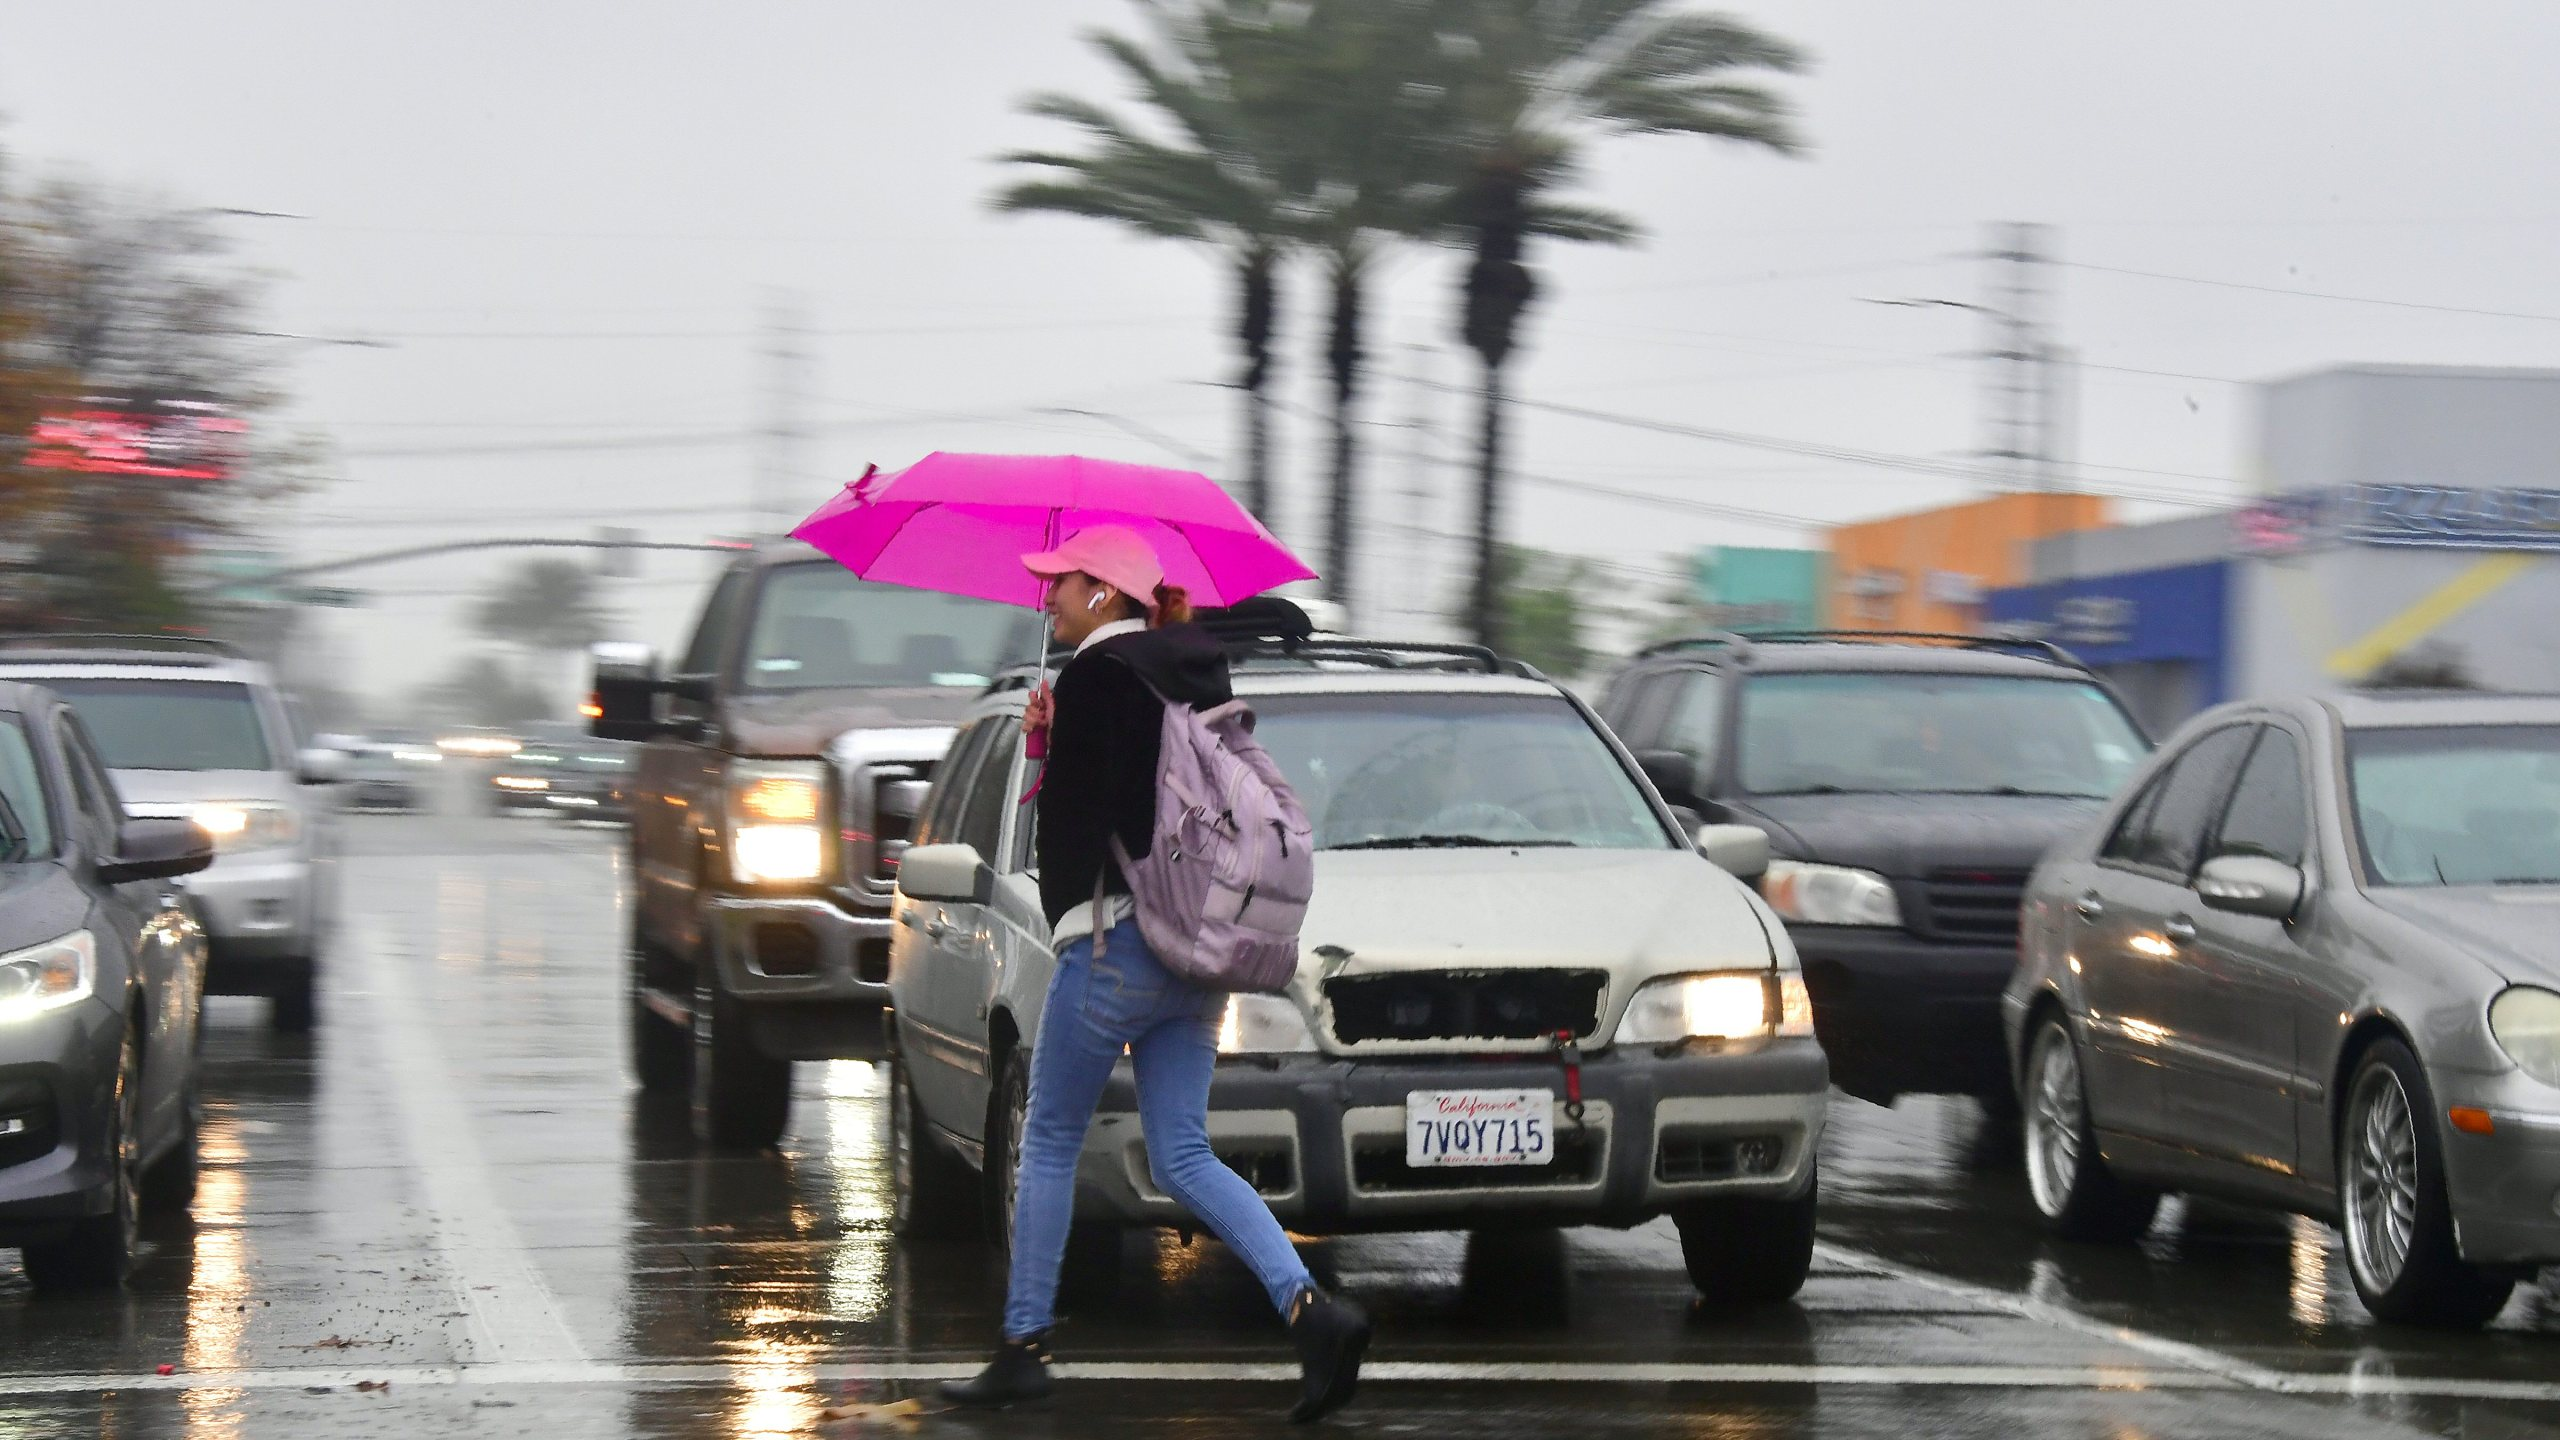 A pedestrian crosses a street in the rain in Montebello, California on January 16, 2019. (Credit: FREDERIC J. BROWN/AFP/Getty Images)